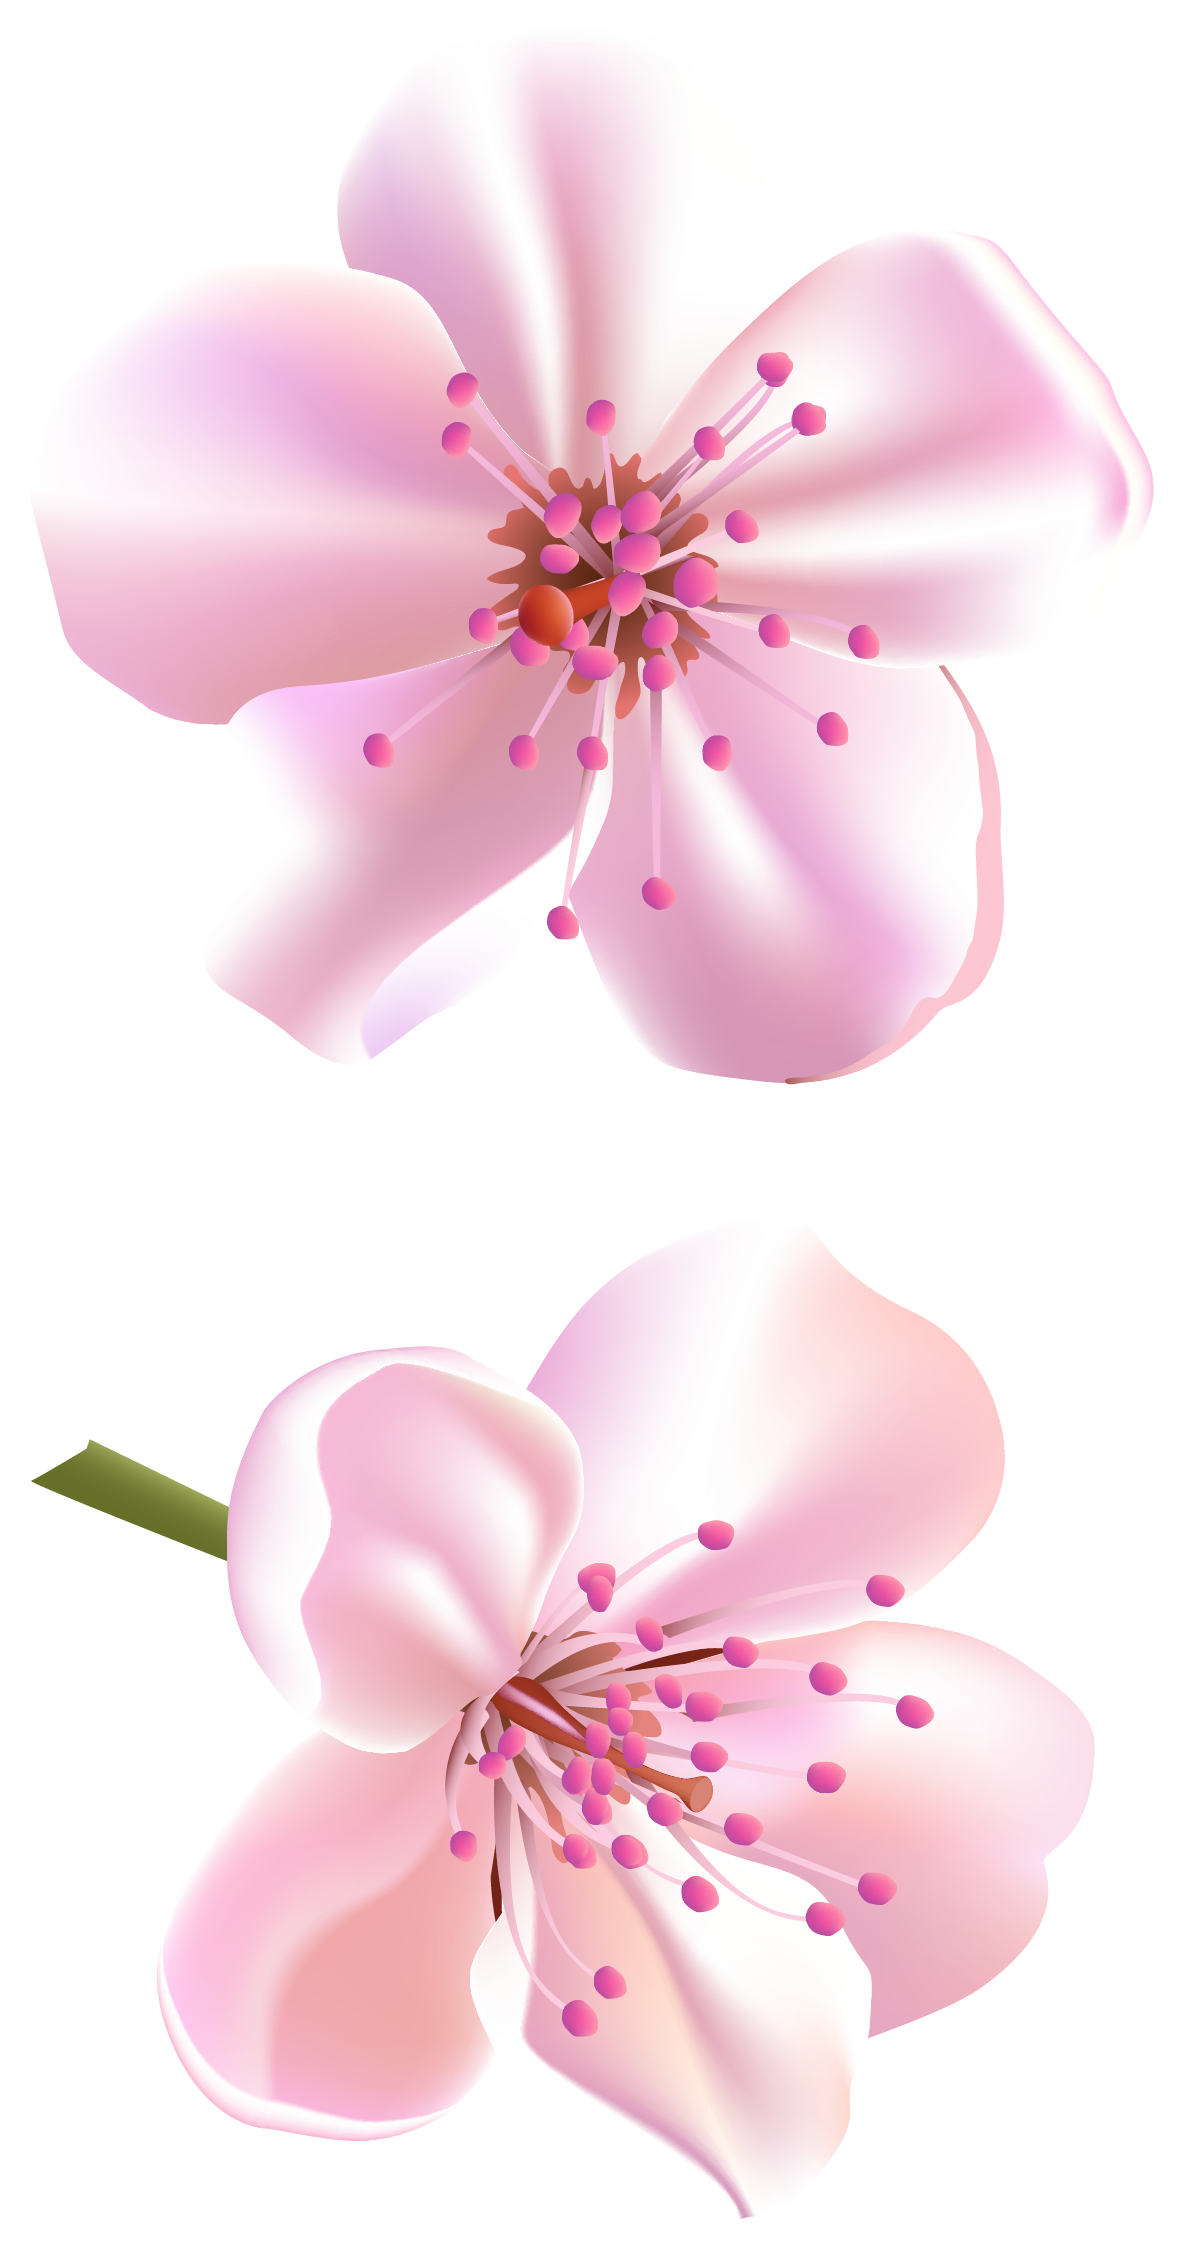 Memories clipart purple tree. Spring pink flowers png